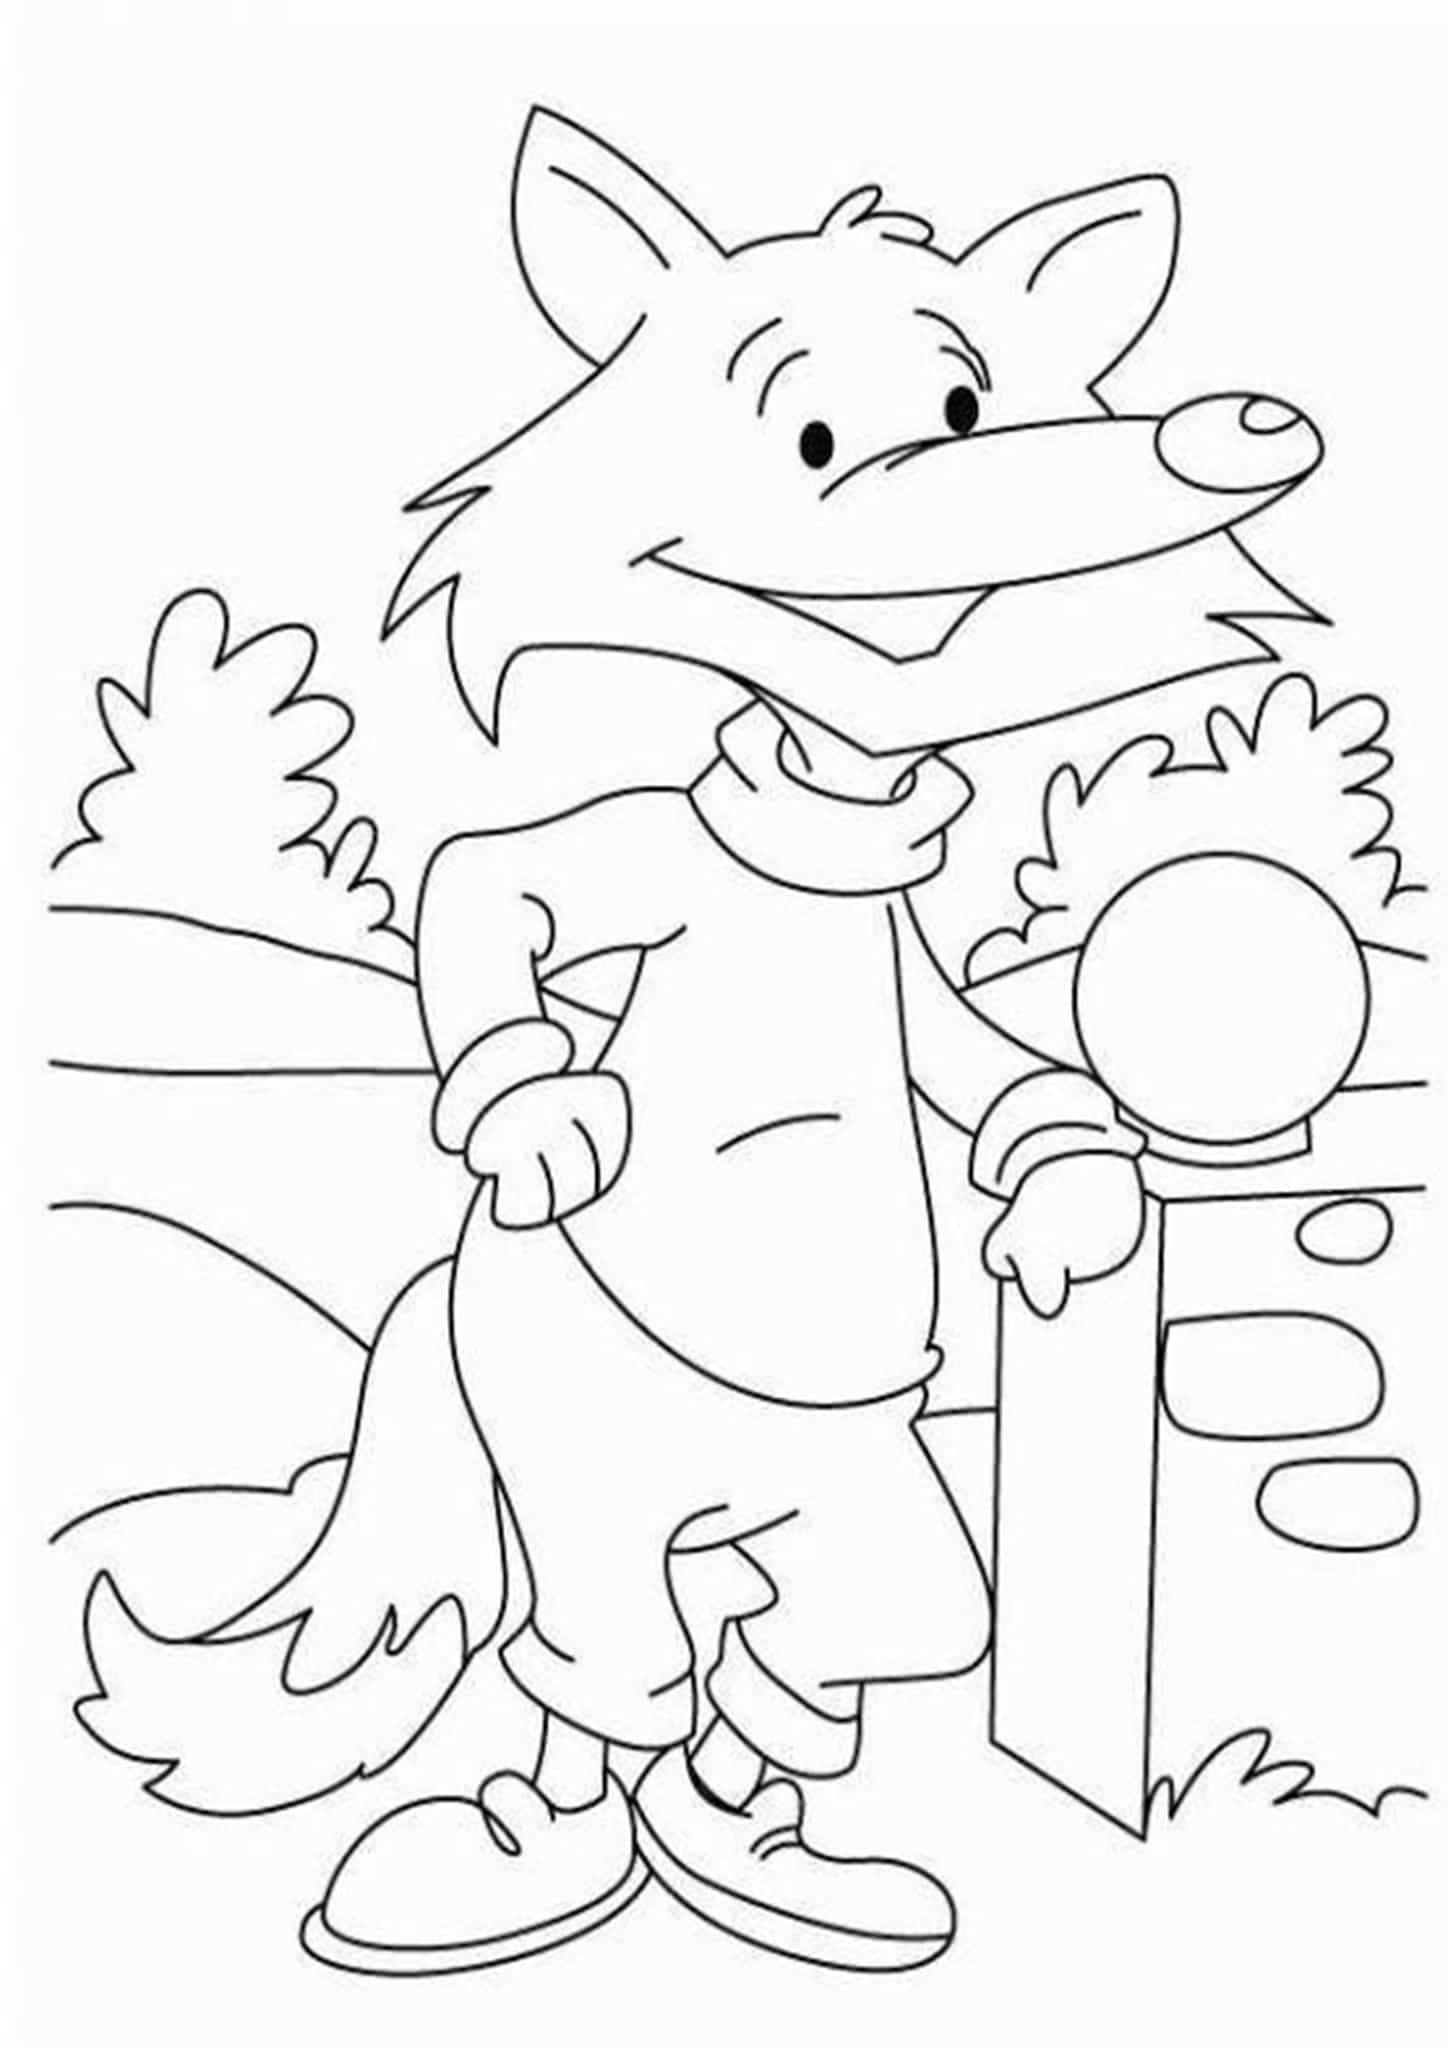 foxes coloring pages free easy to print fox coloring pages tulamama coloring pages foxes